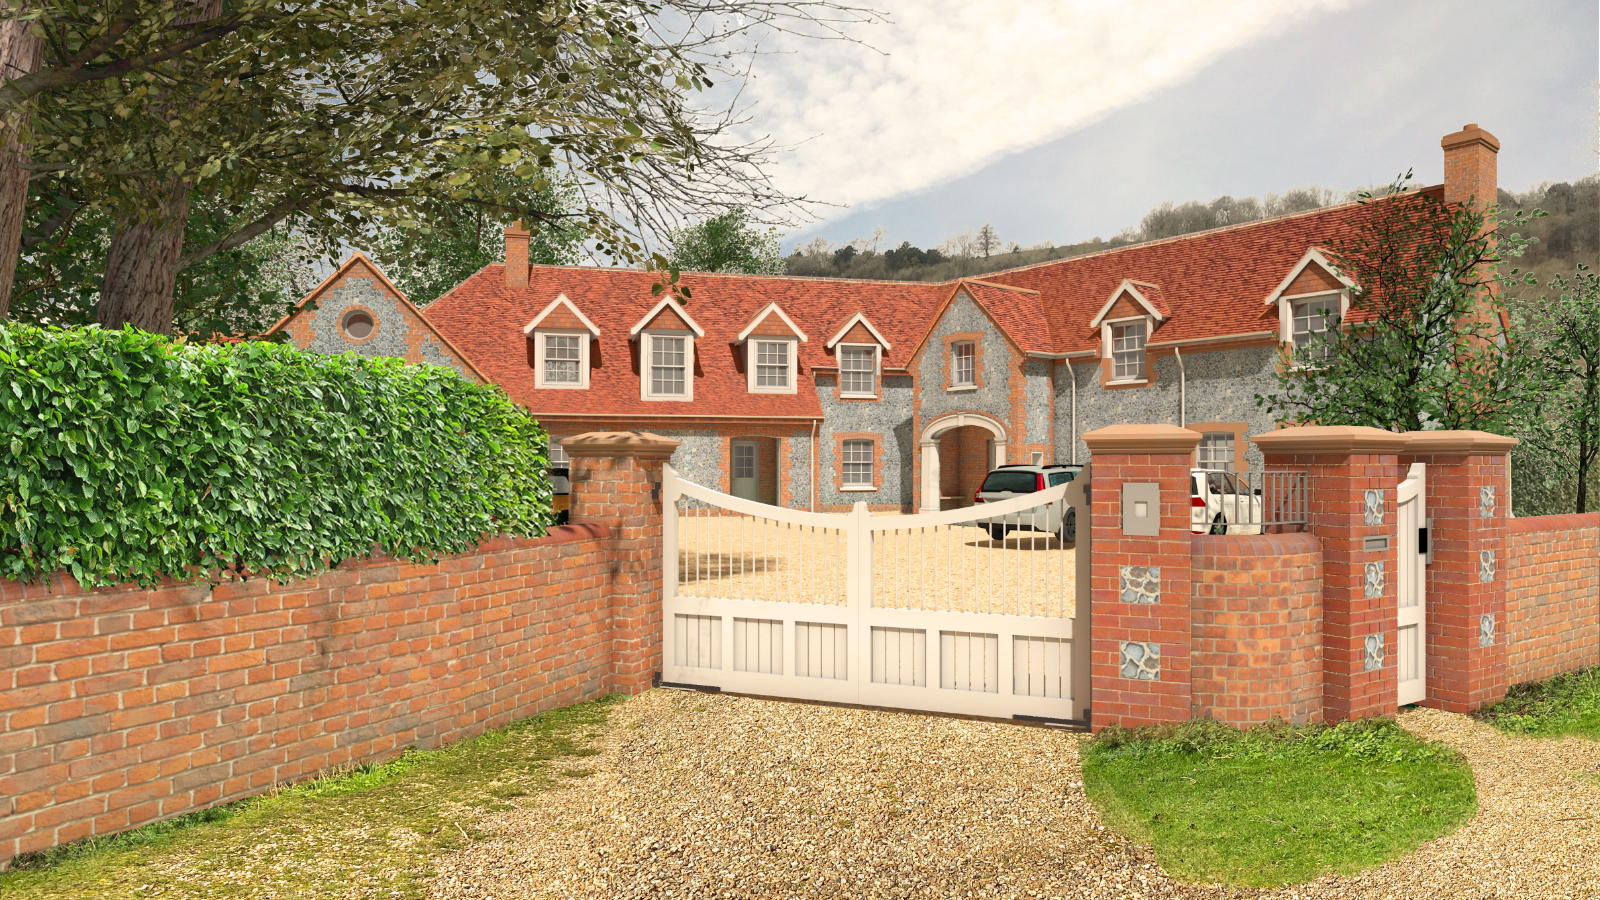 Private House Chilterns Architecture Gate View Flintwork